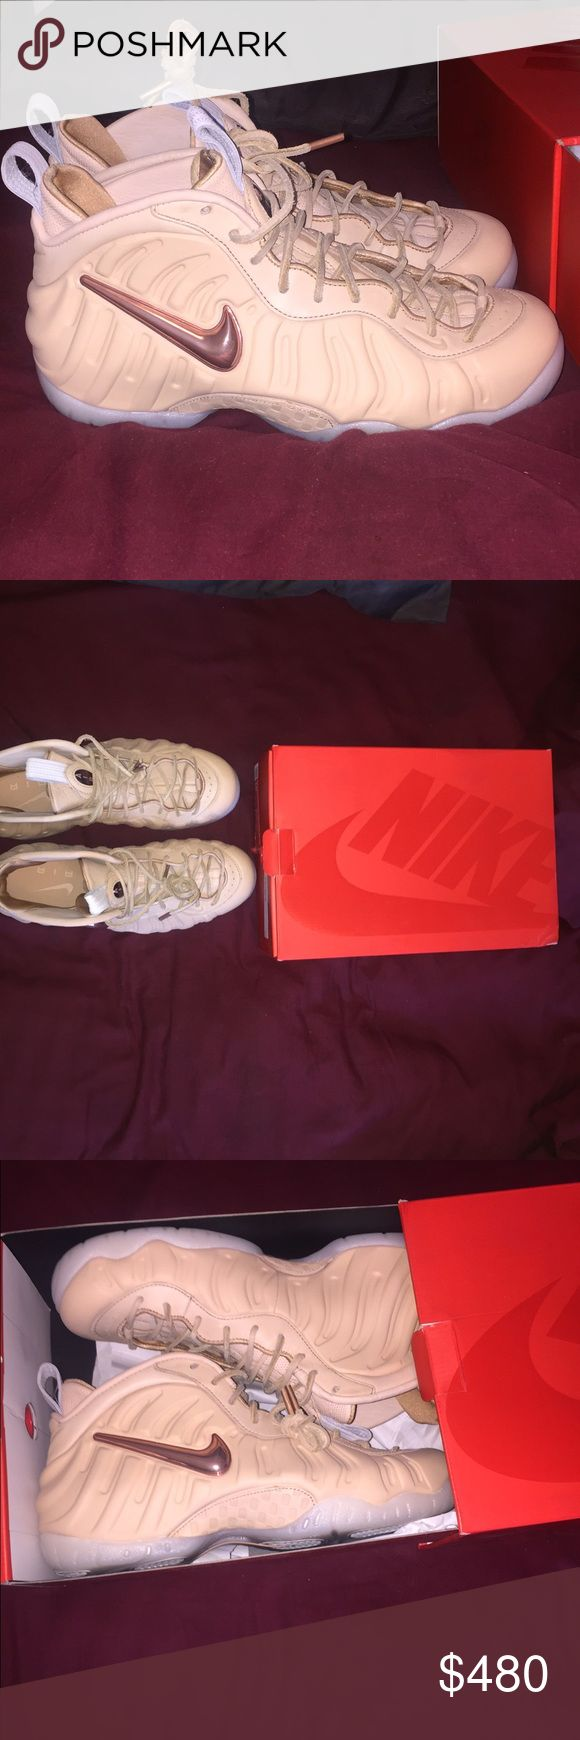 Nike Foamposite Pro All-Star Vachetta Tan Brand New with original everything amazing looking shoes sz 10 Nike Shoes Sneakers